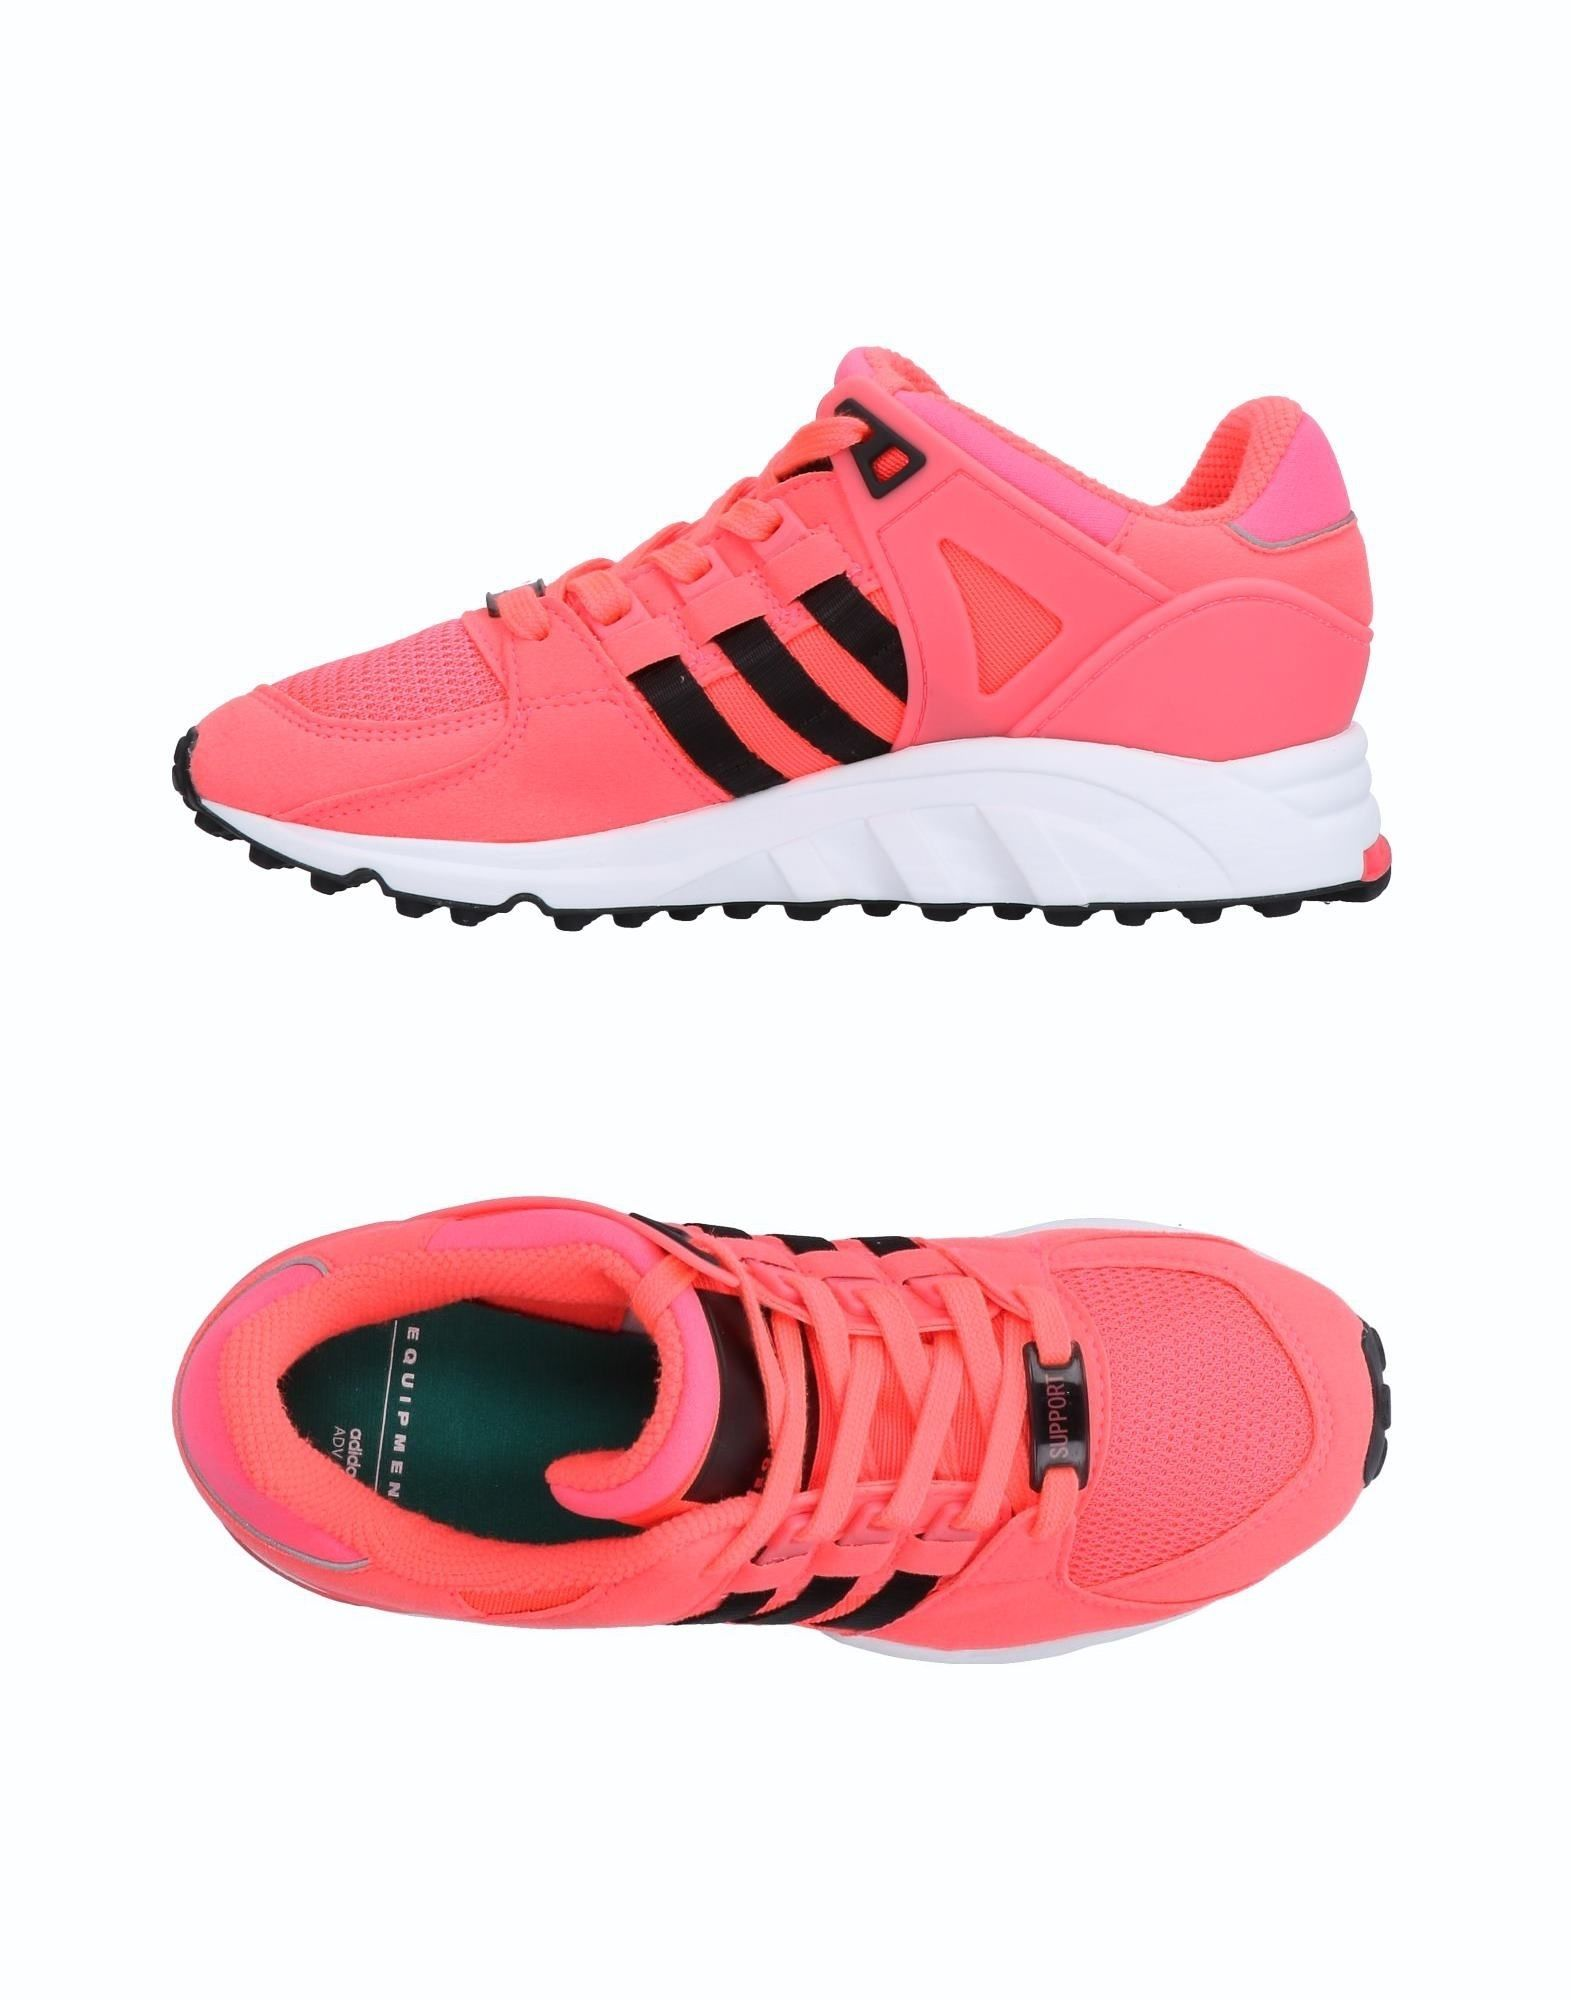 Sneakers Adidas Originals Uomo - 11506129GW